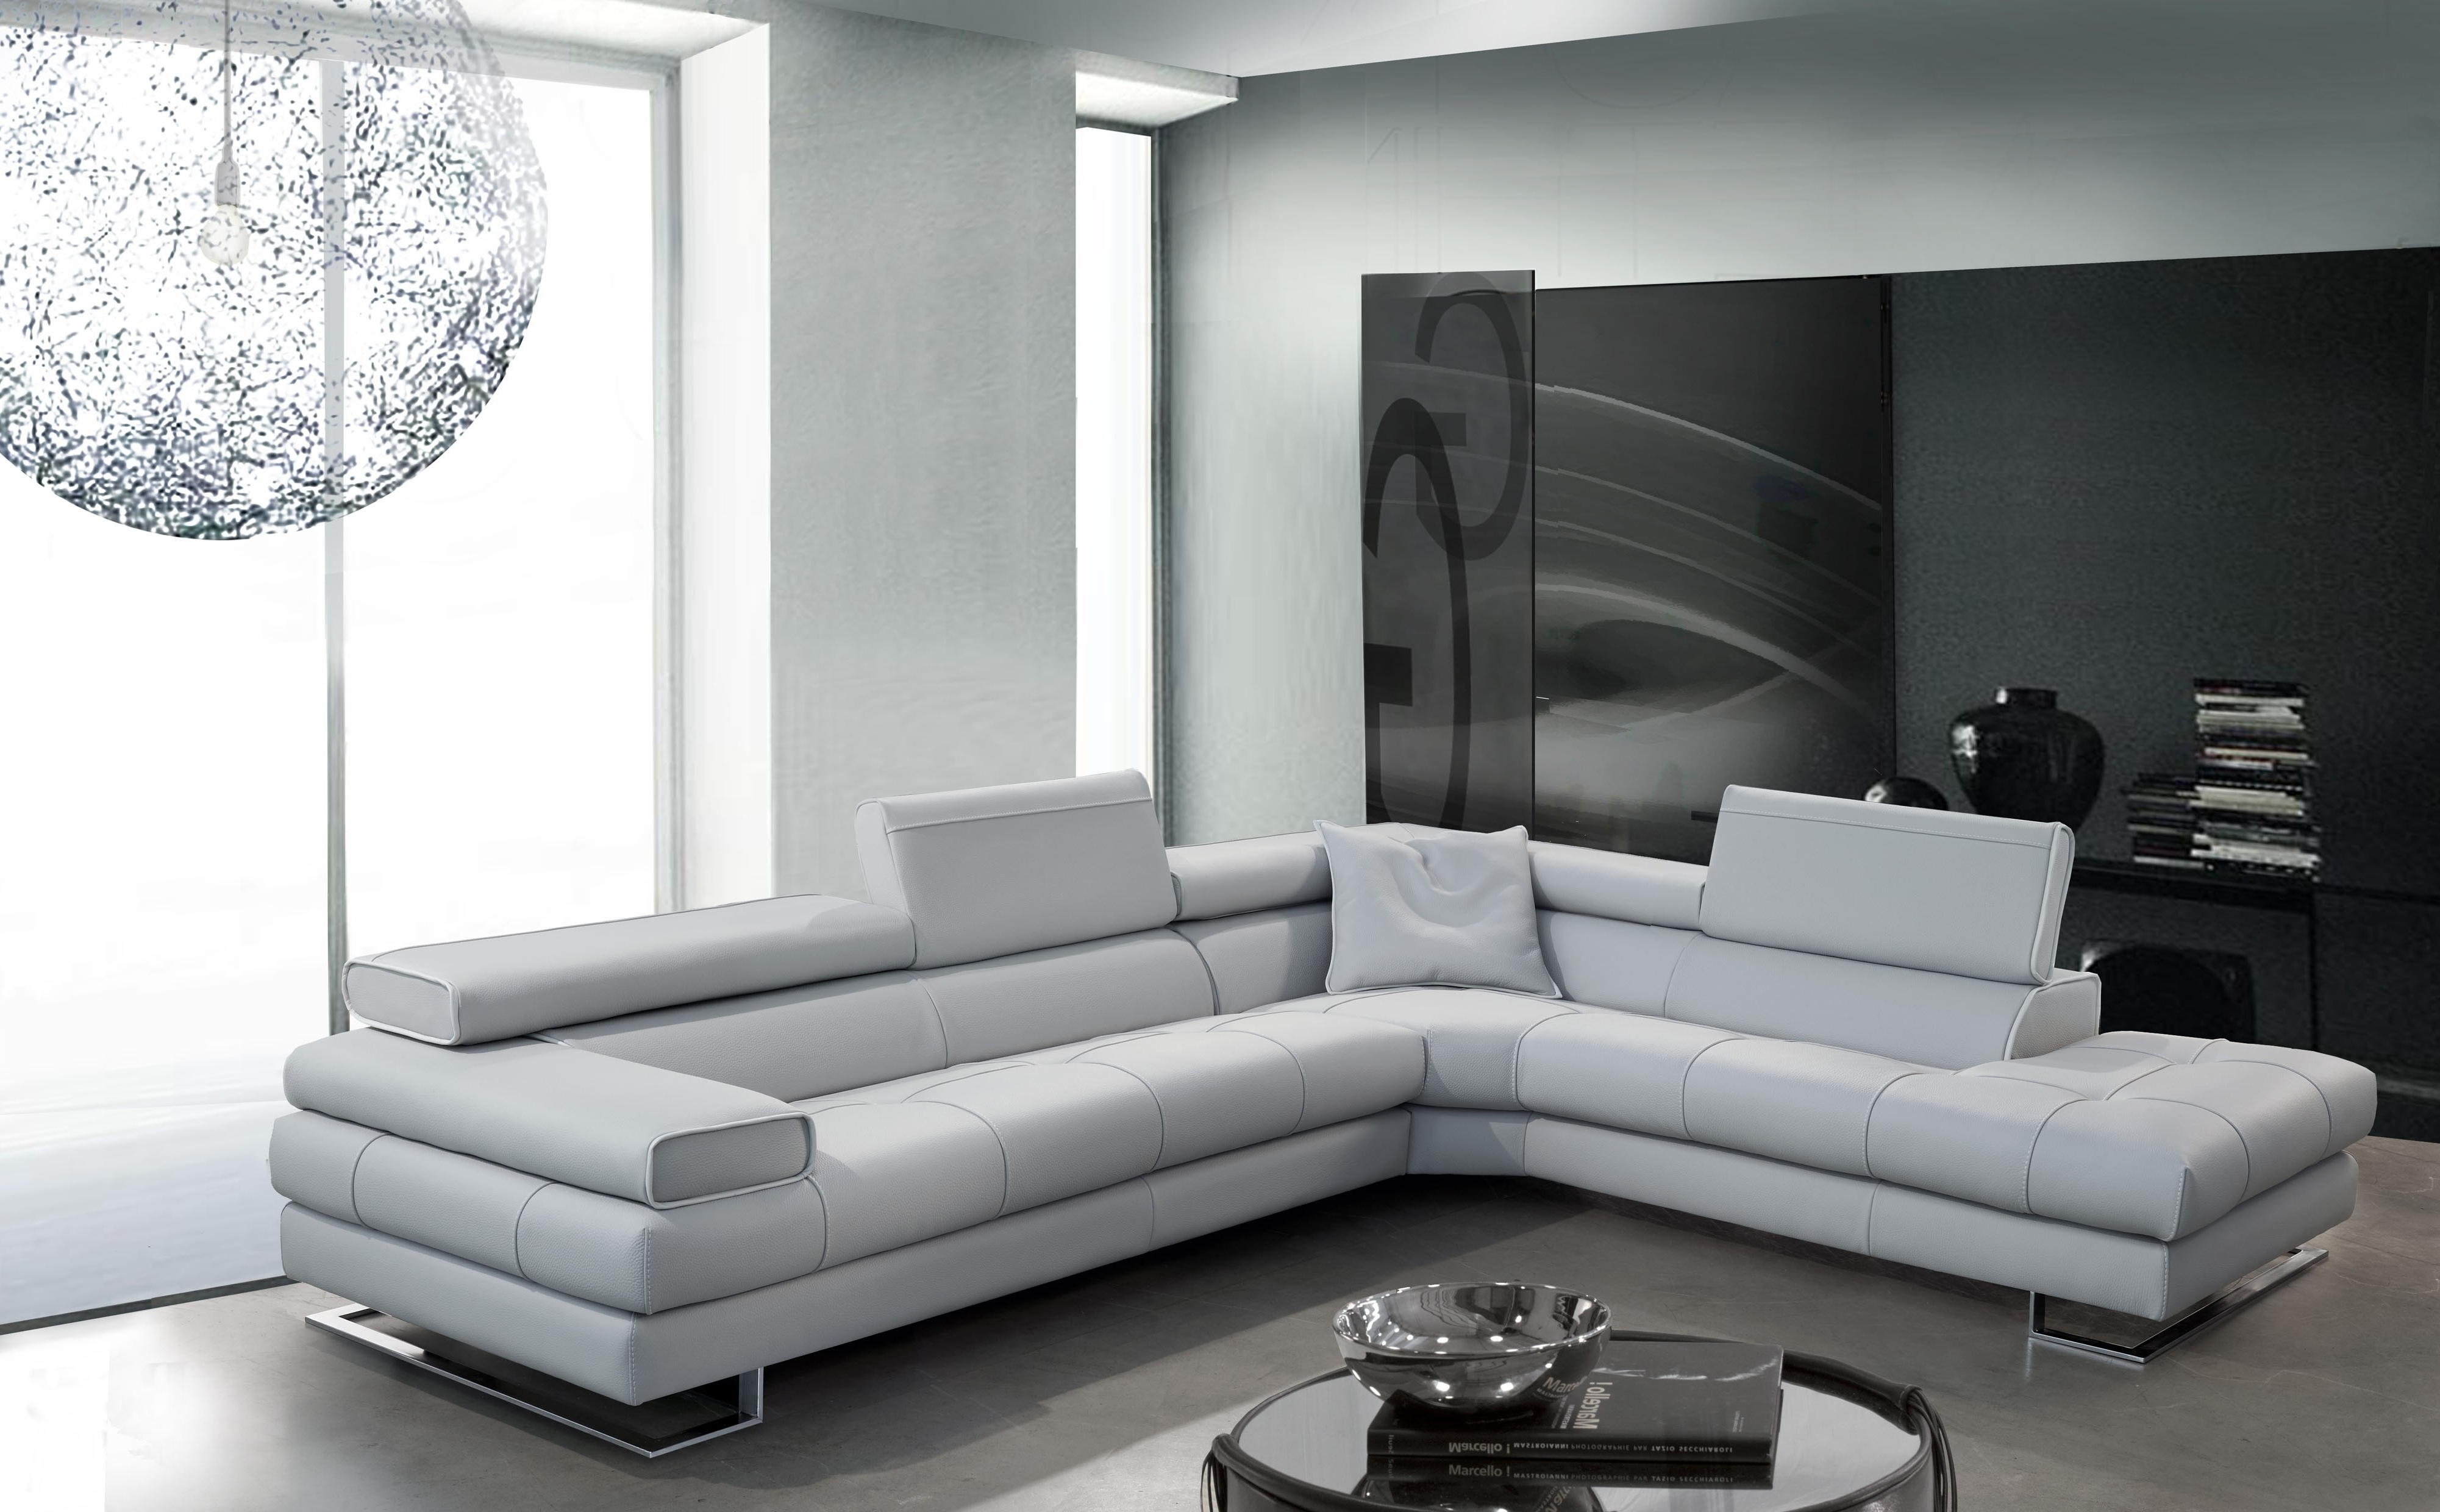 Modern Microfiber Sectional Sofas For Well Known Modern Microfiber Sectional Sofas – Szfpbgj (View 20 of 20)